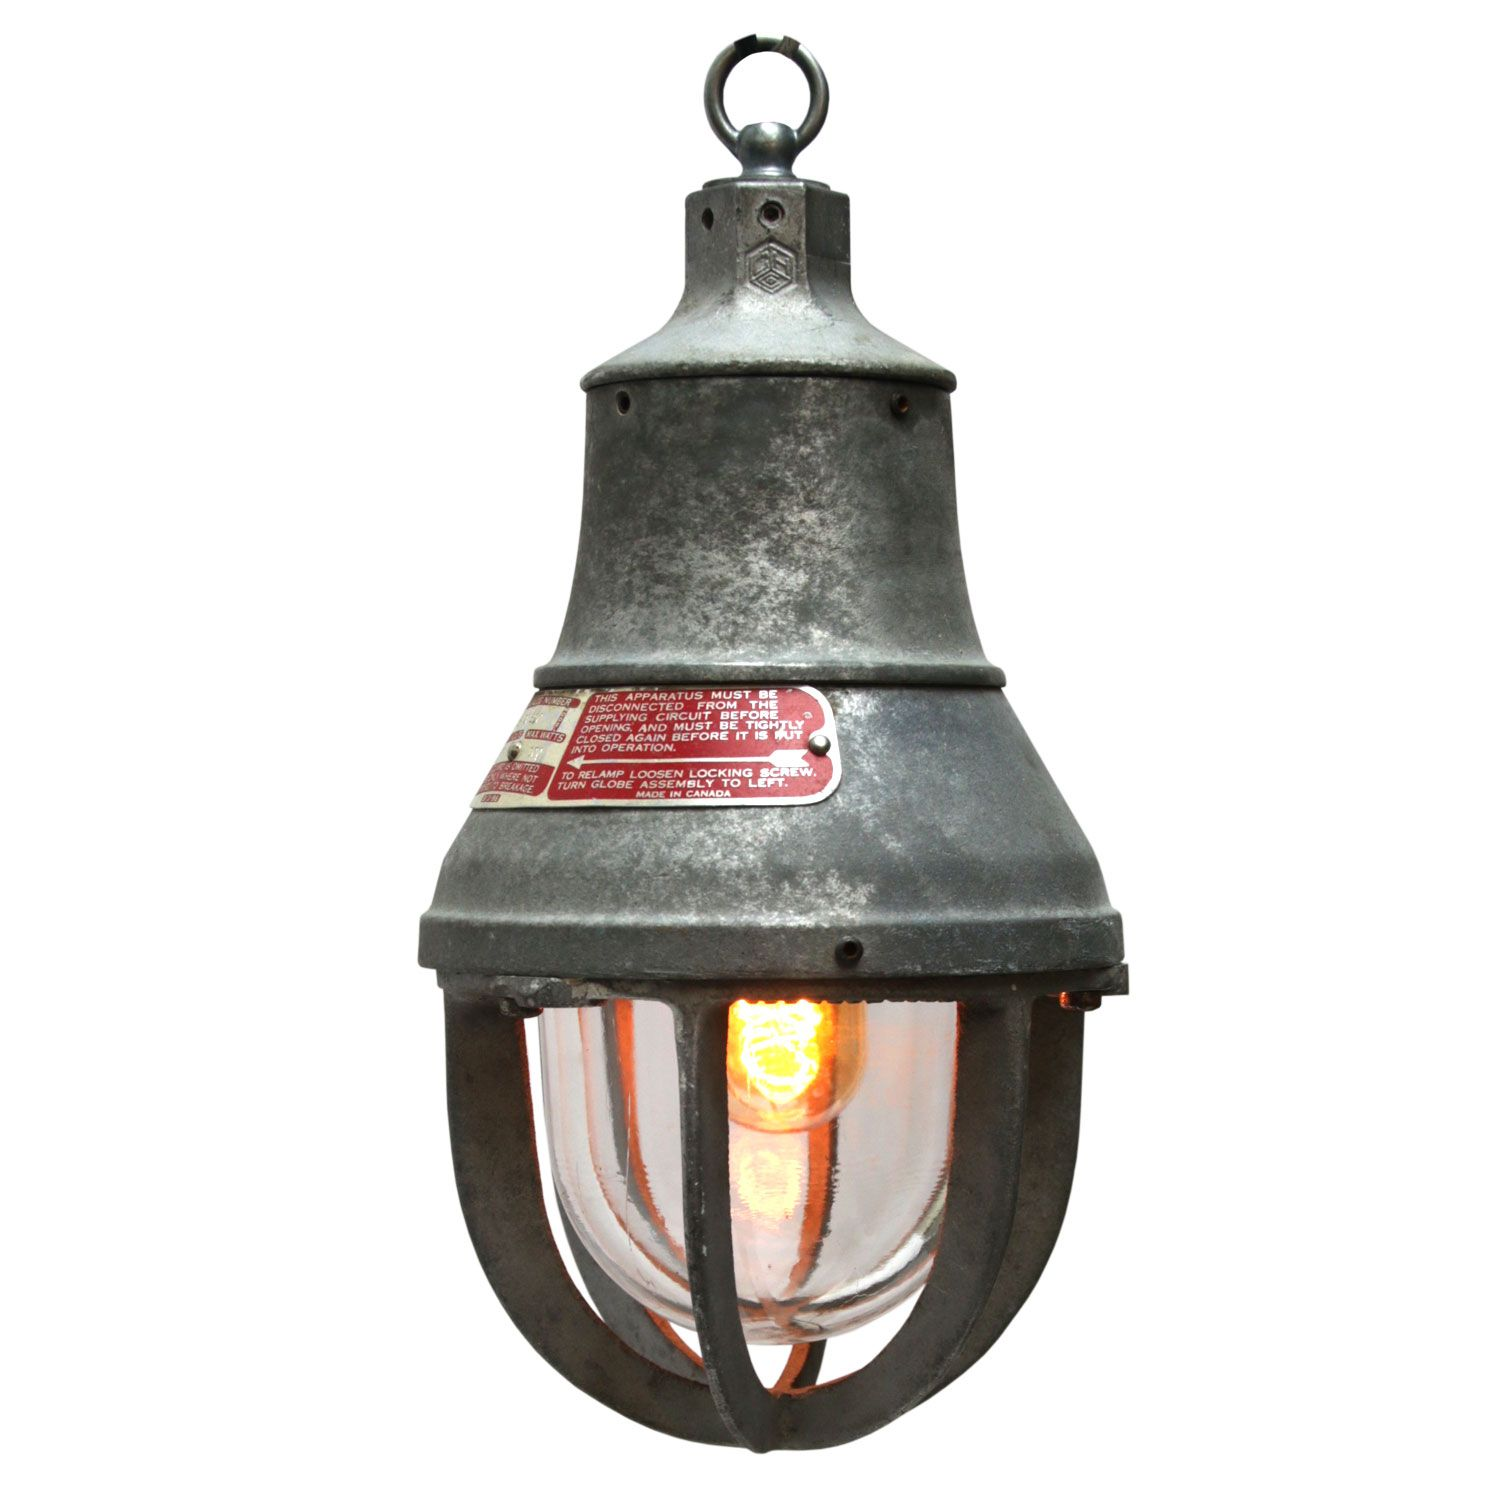 Crouse hinds bully lights 360volt the biggest collection crouse hinds bully lights 360volt the biggest collection vintage industrial lighting specialized arubaitofo Choice Image